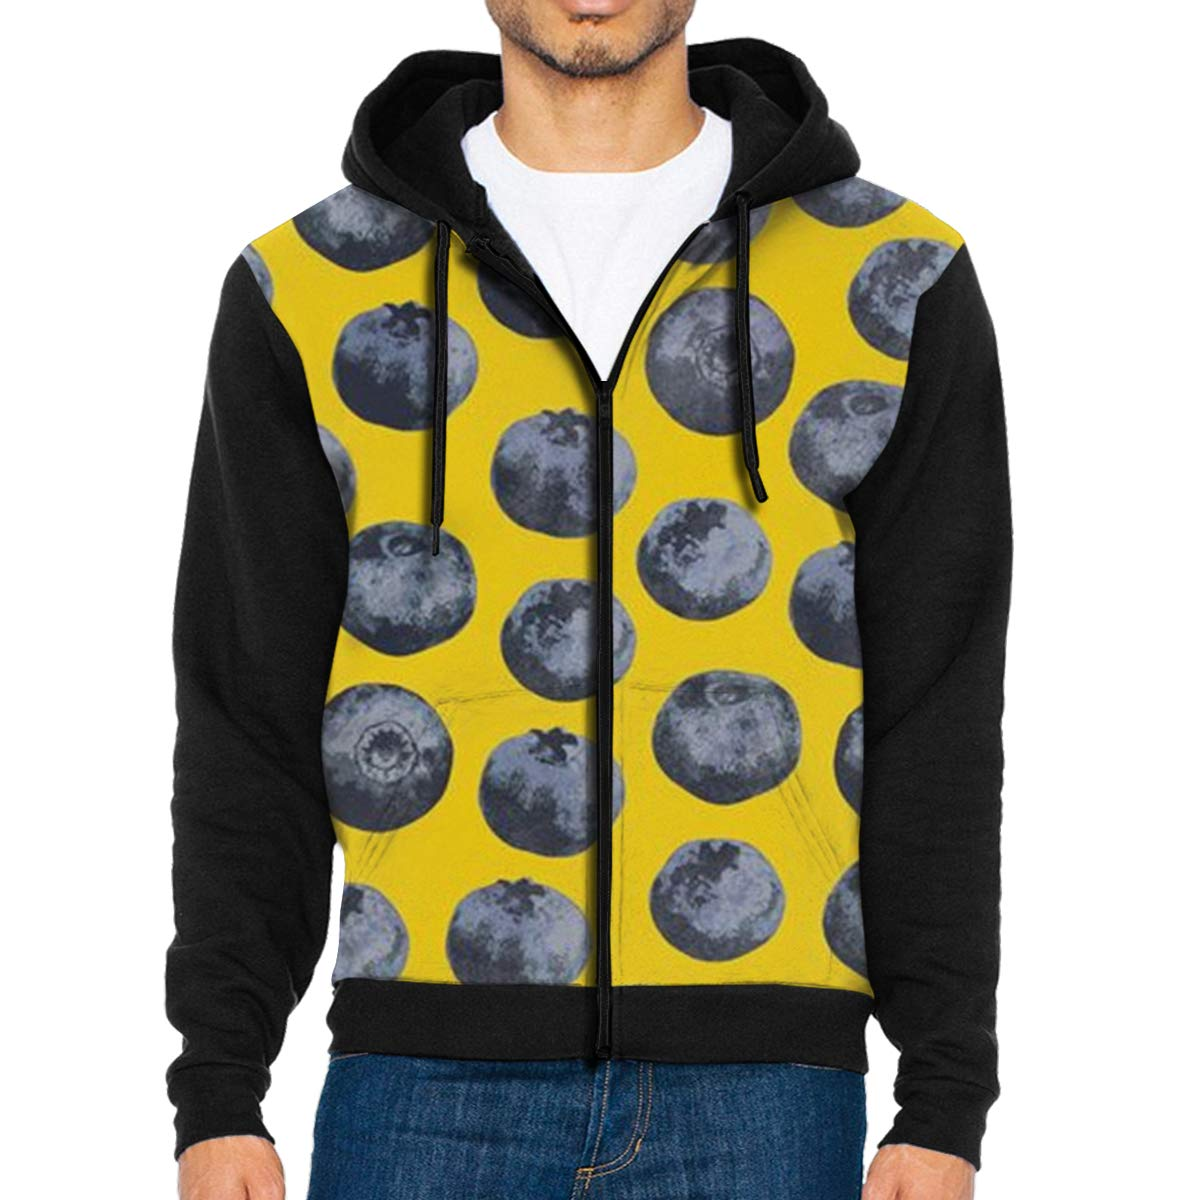 Blueberry Yellow Background Lightweight Mans Jacket with Hood Long Sleeved Zippered Outwear